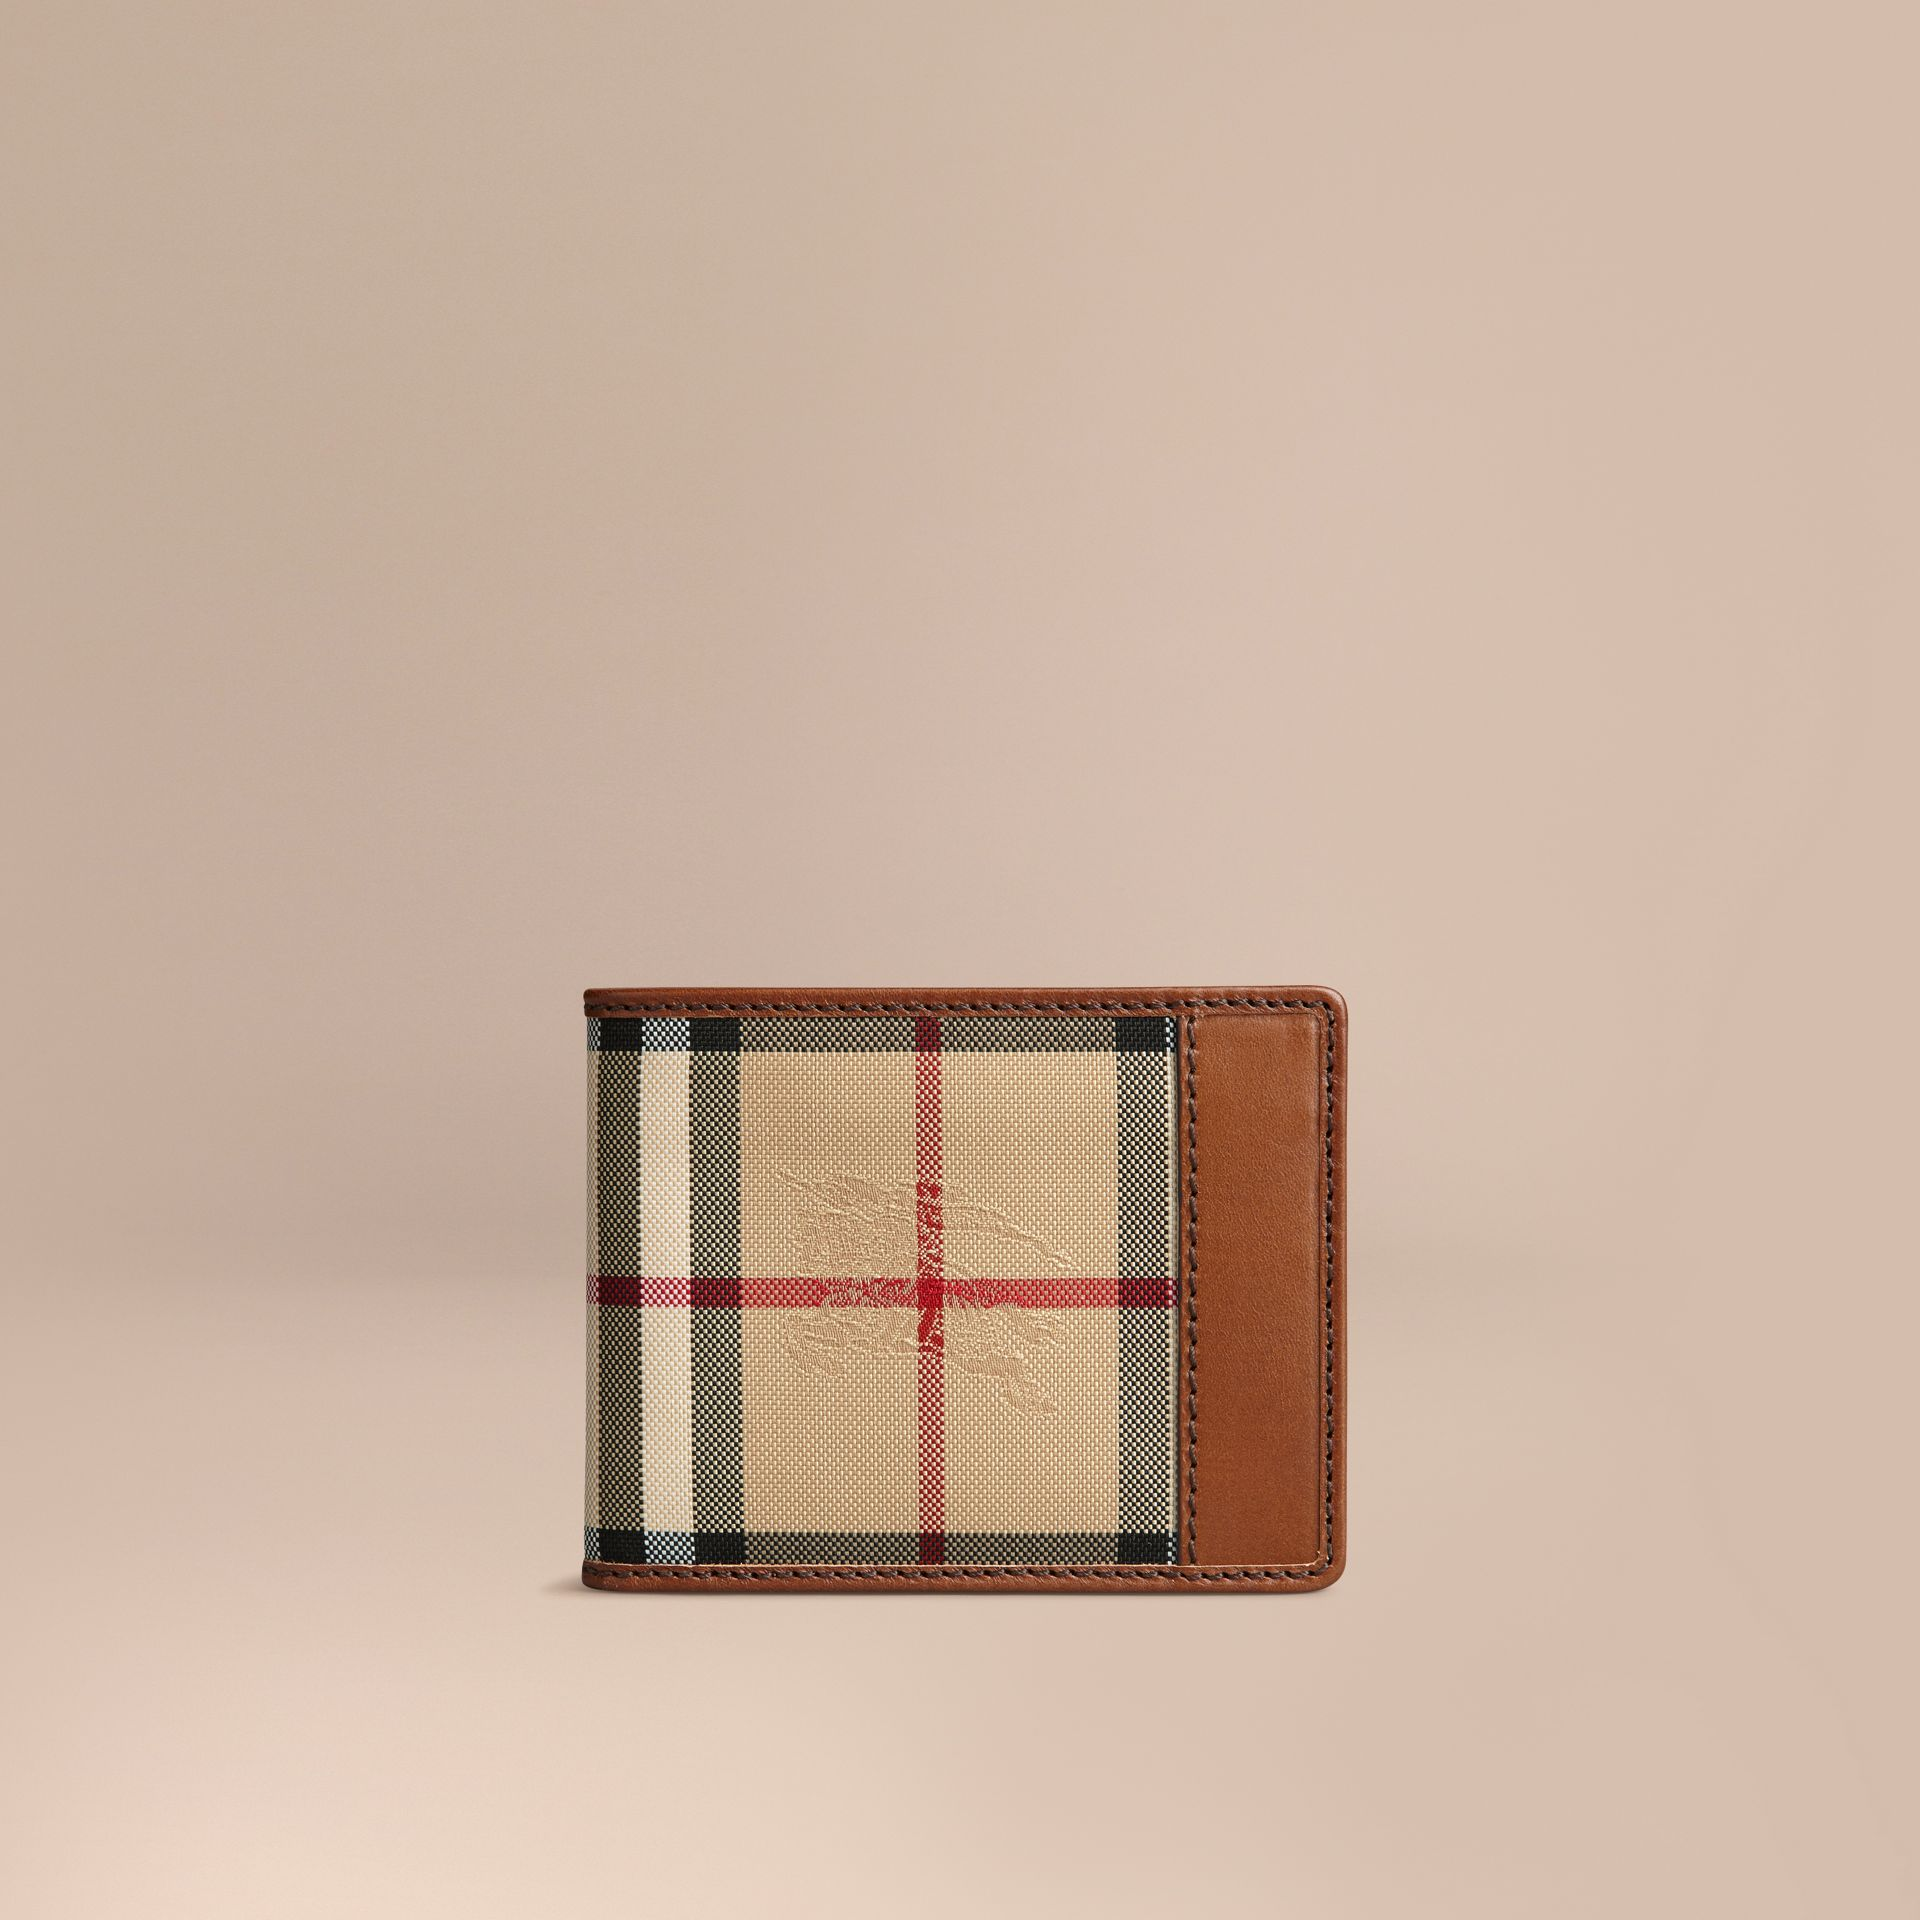 Tan Horseferry Check Wallet Tan - gallery image 1